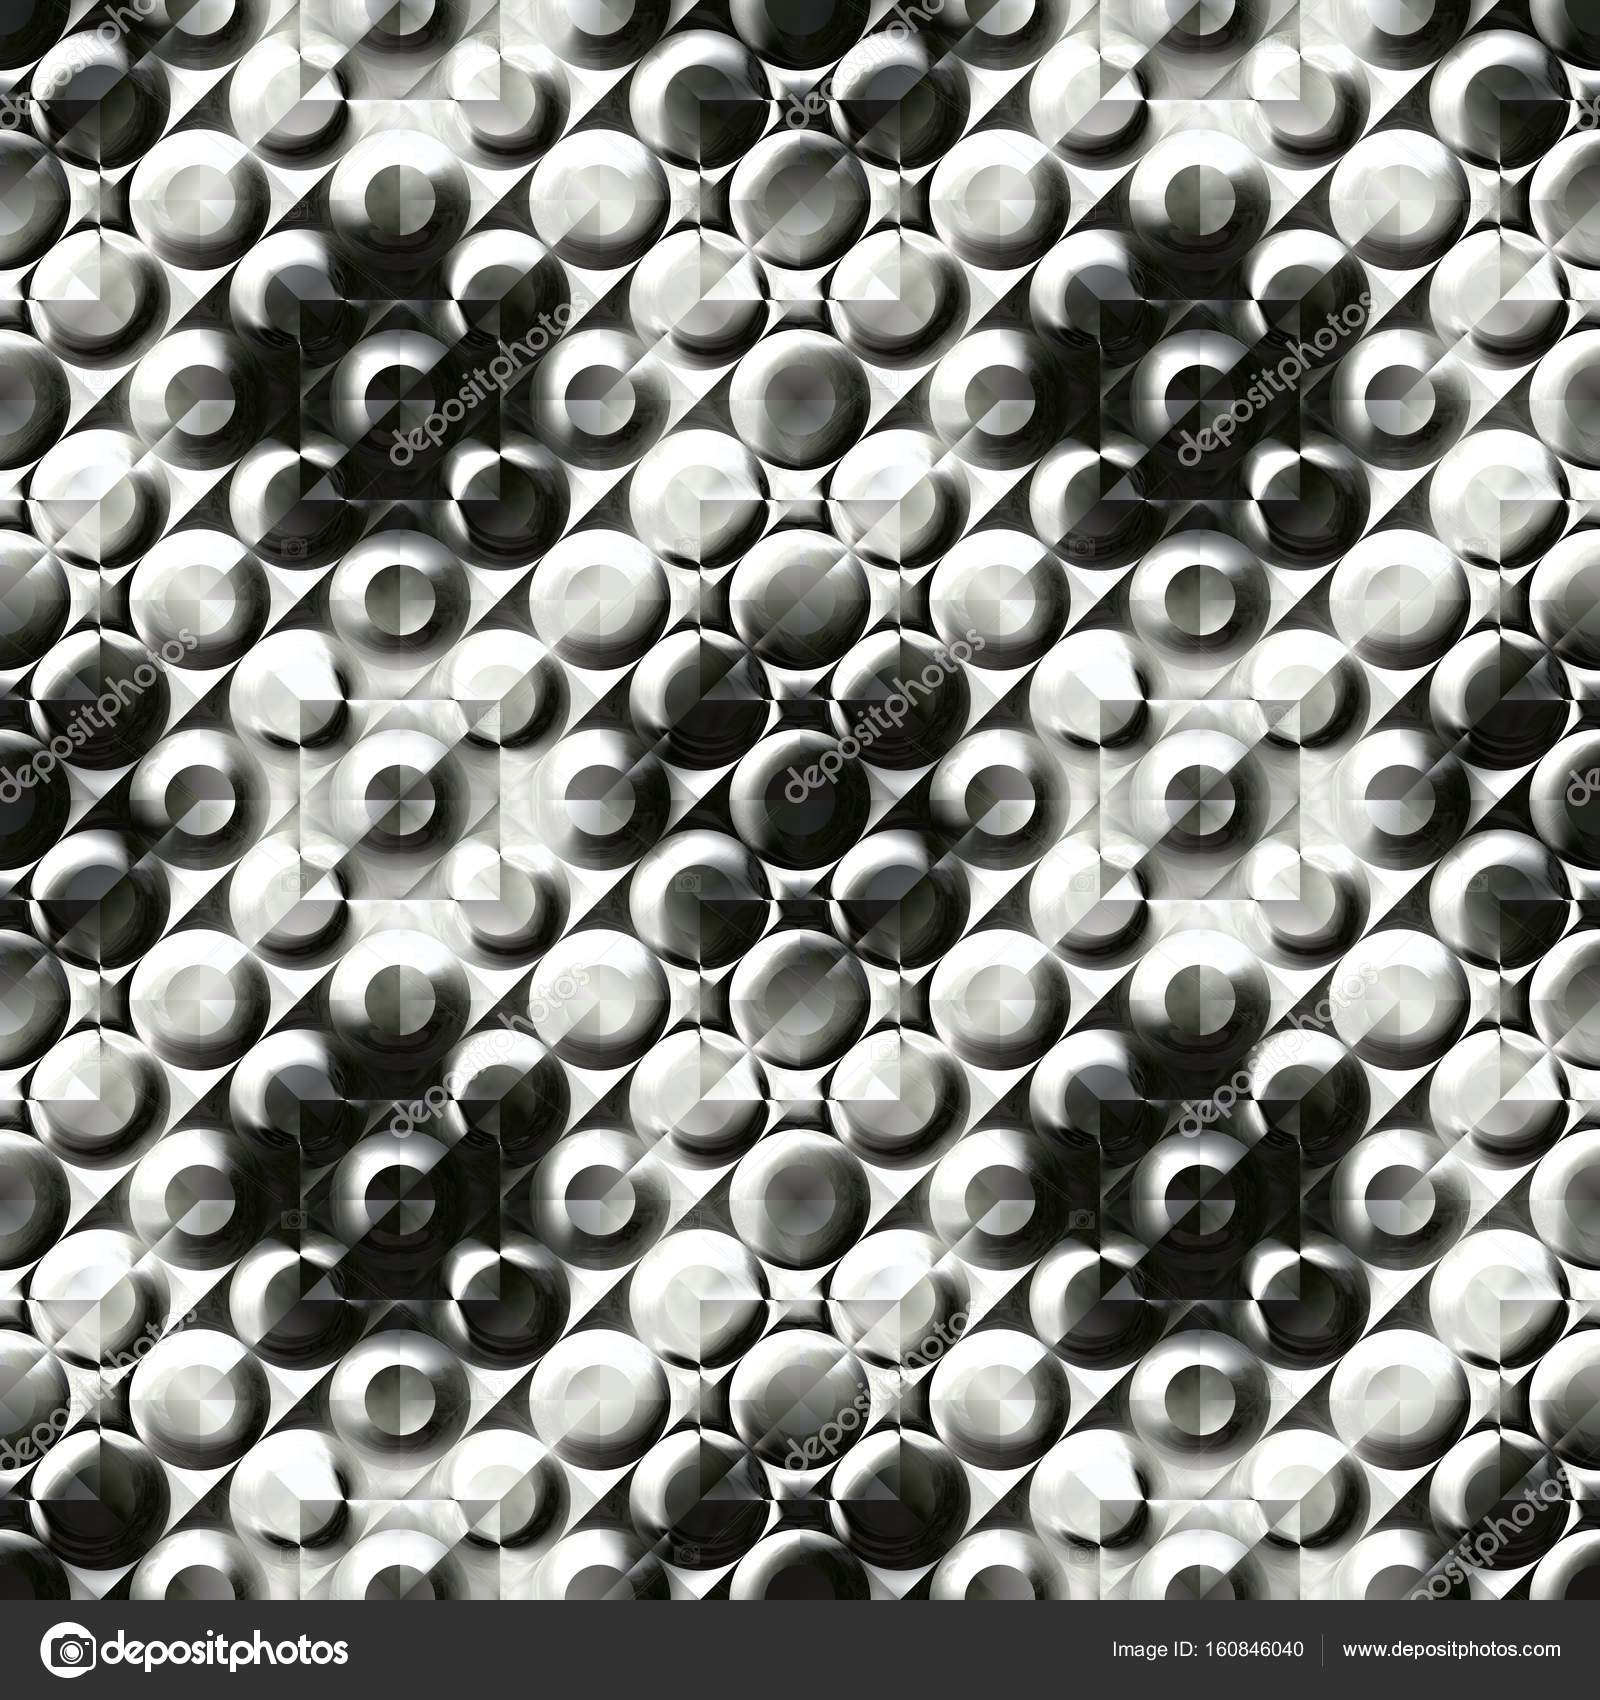 Abstract Black And White 3D Surface Pattern Relief Tile Texture Background Plastic Tiled Seamless Illustration Photo By DyxonD